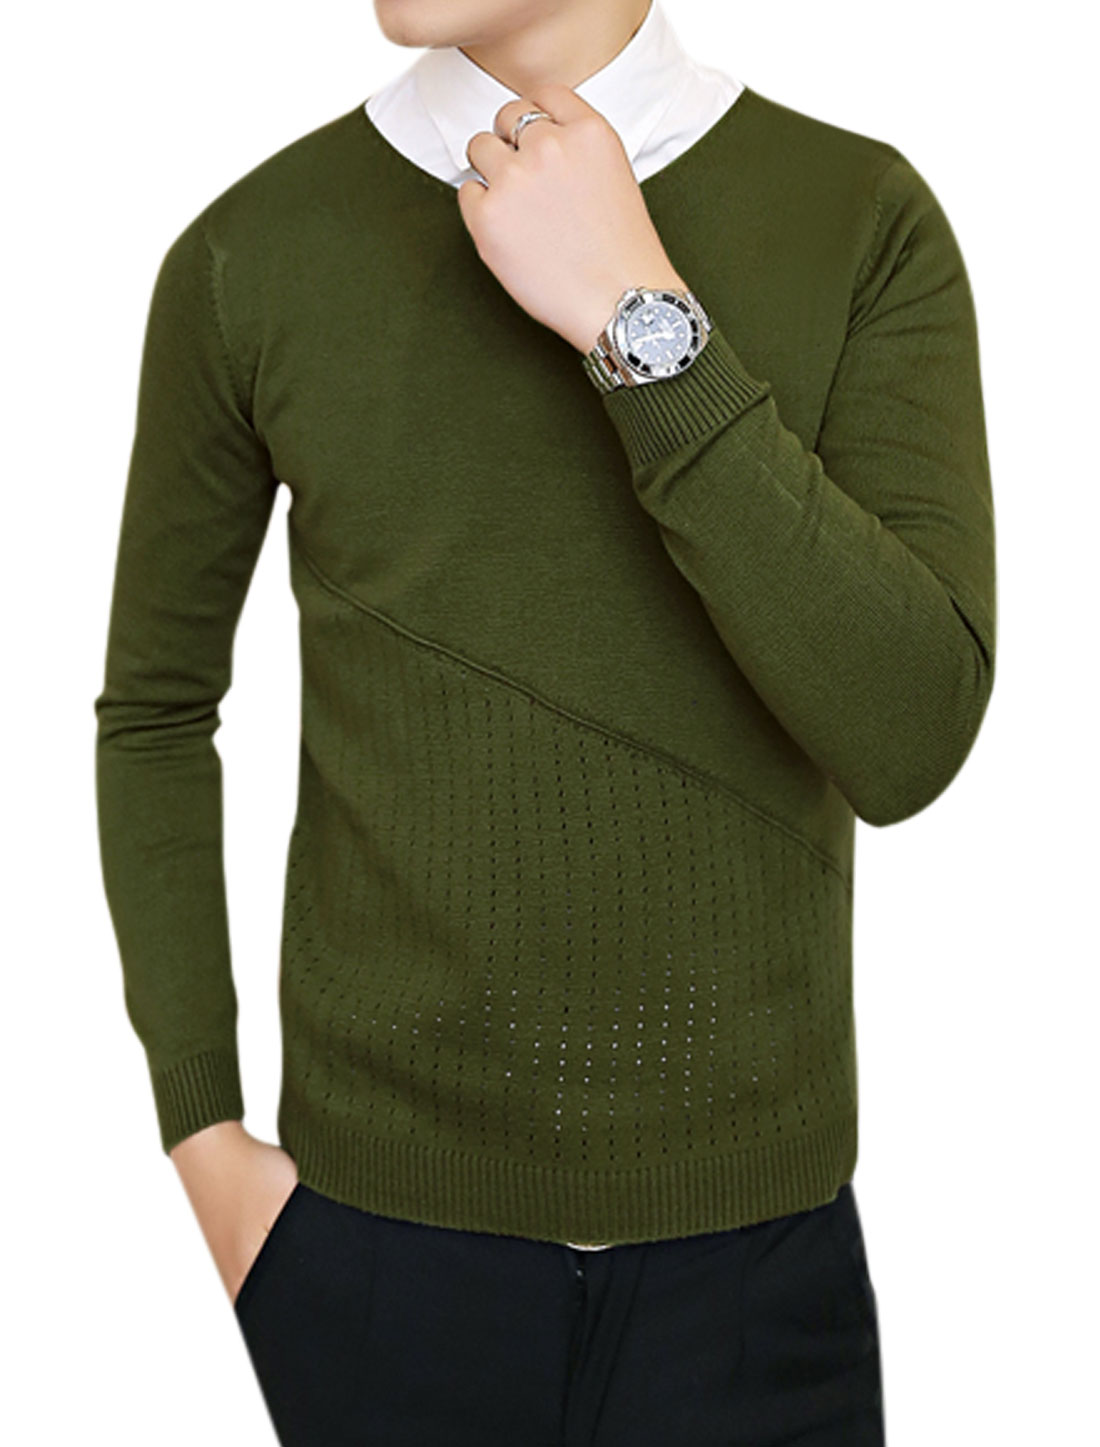 Men Slipover Hollow Out Detail Chic Army Green Sweater S